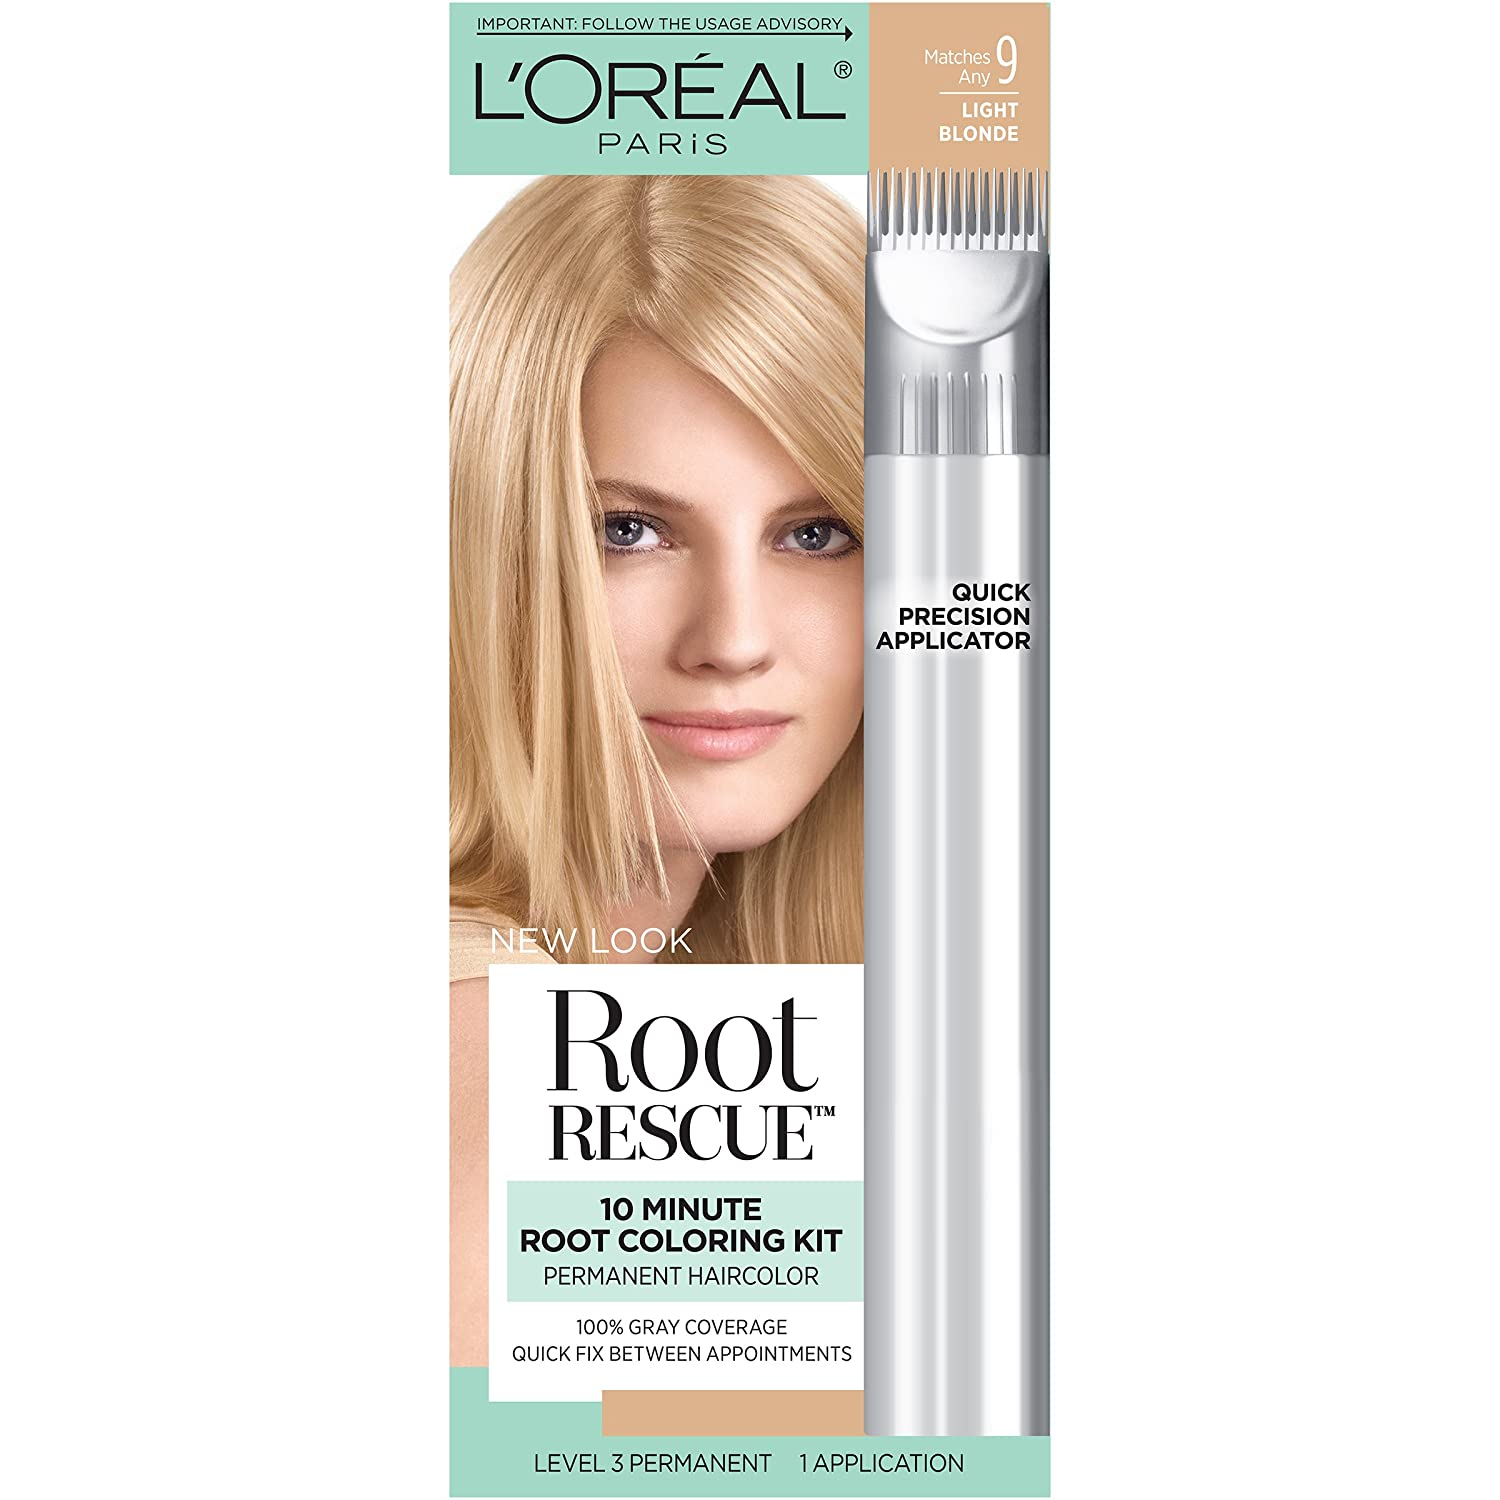 L\'Oreal Paris Root Rescue 10 Minute Root Coloring Kit, 9 Light Blonde